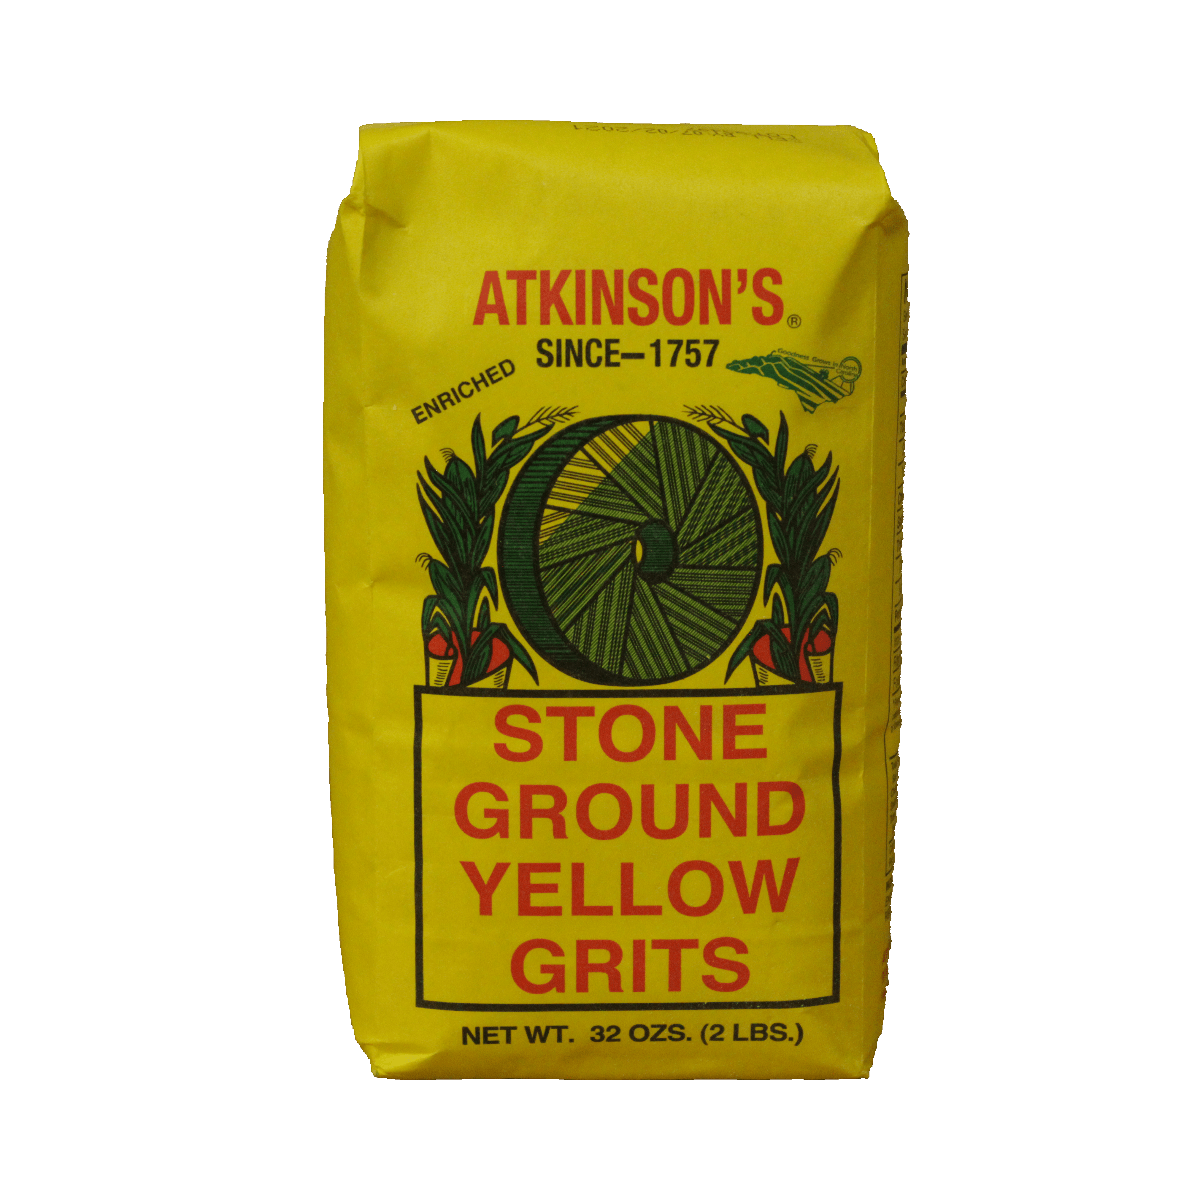 Atkinson Milling Company Atkinson's Stone Ground Yellow Grits 2 lb